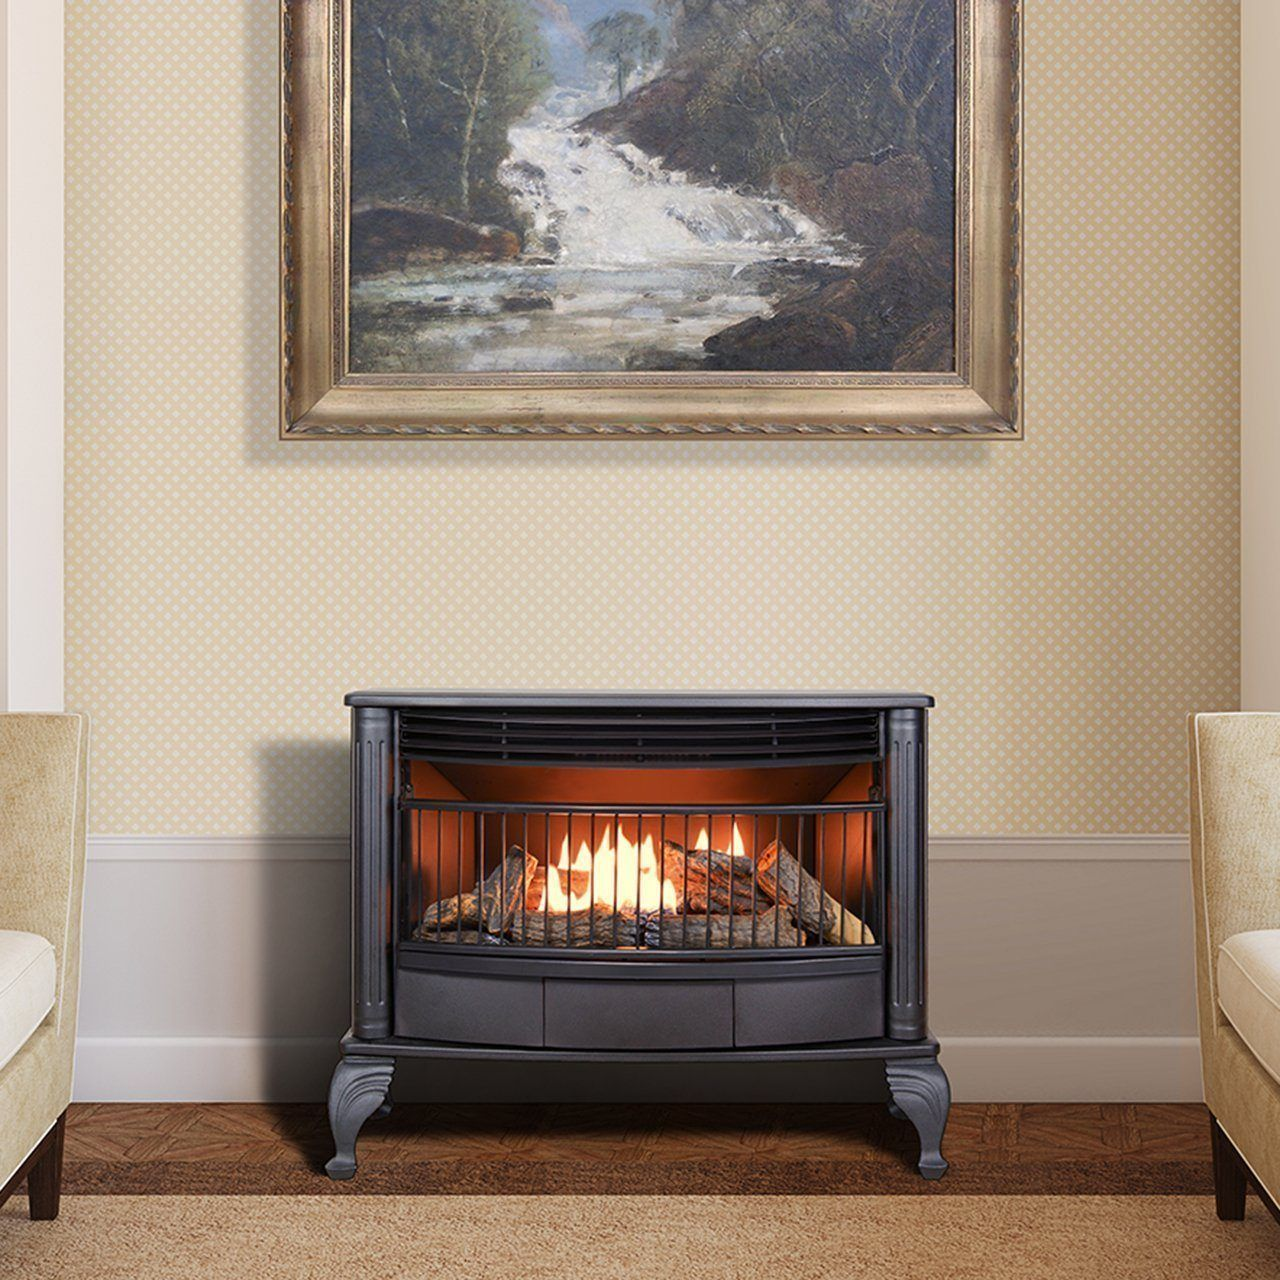 Best Gas Fireplace For Sale Buyer S Guide